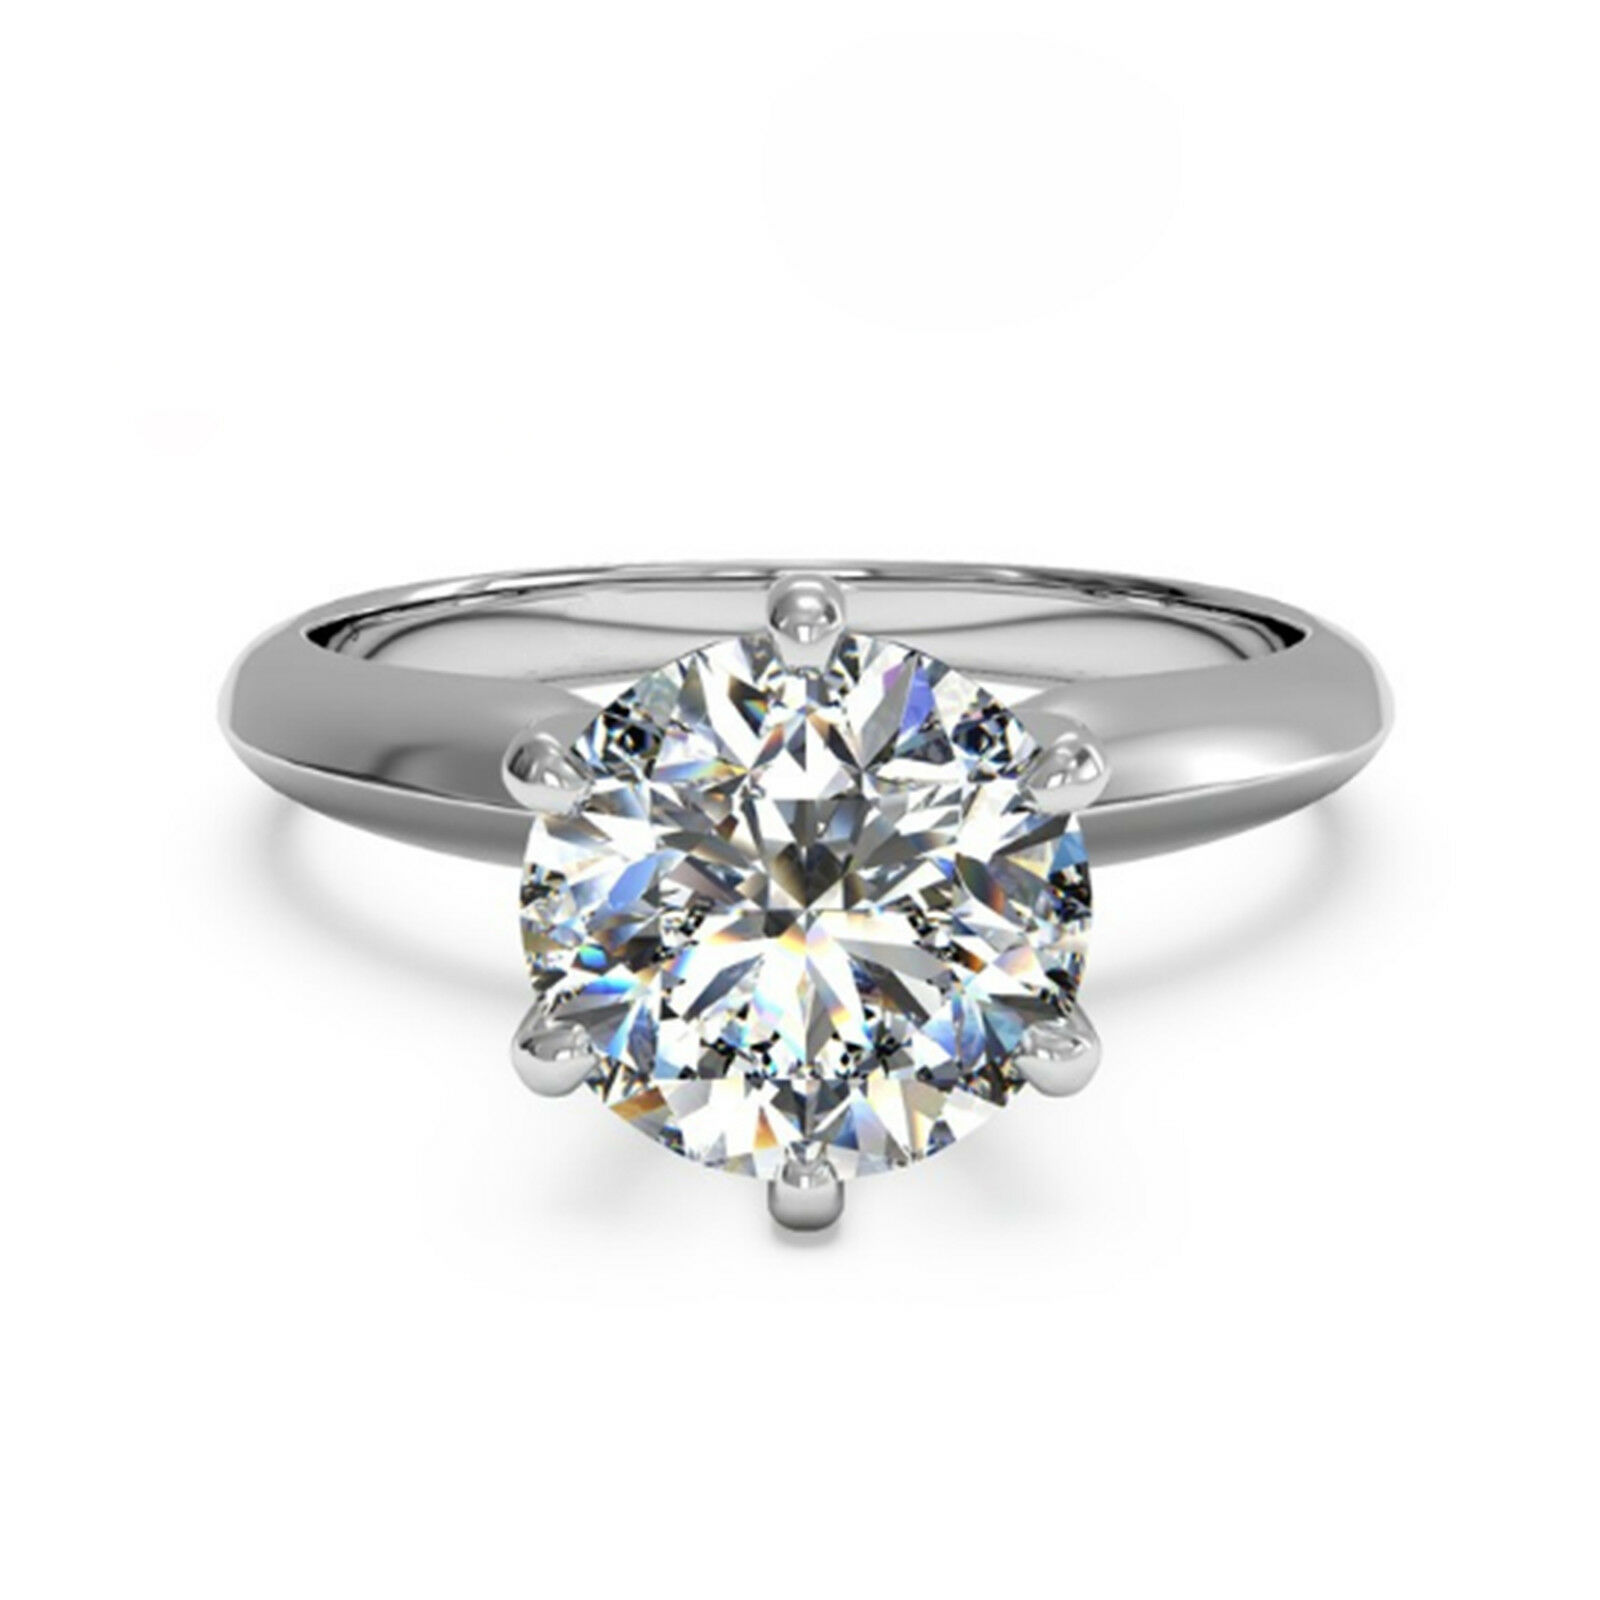 0.40 Ct Round Real Diamond Ring 14K Solid White gold Wedding Ring Size 4 5 6 7 8